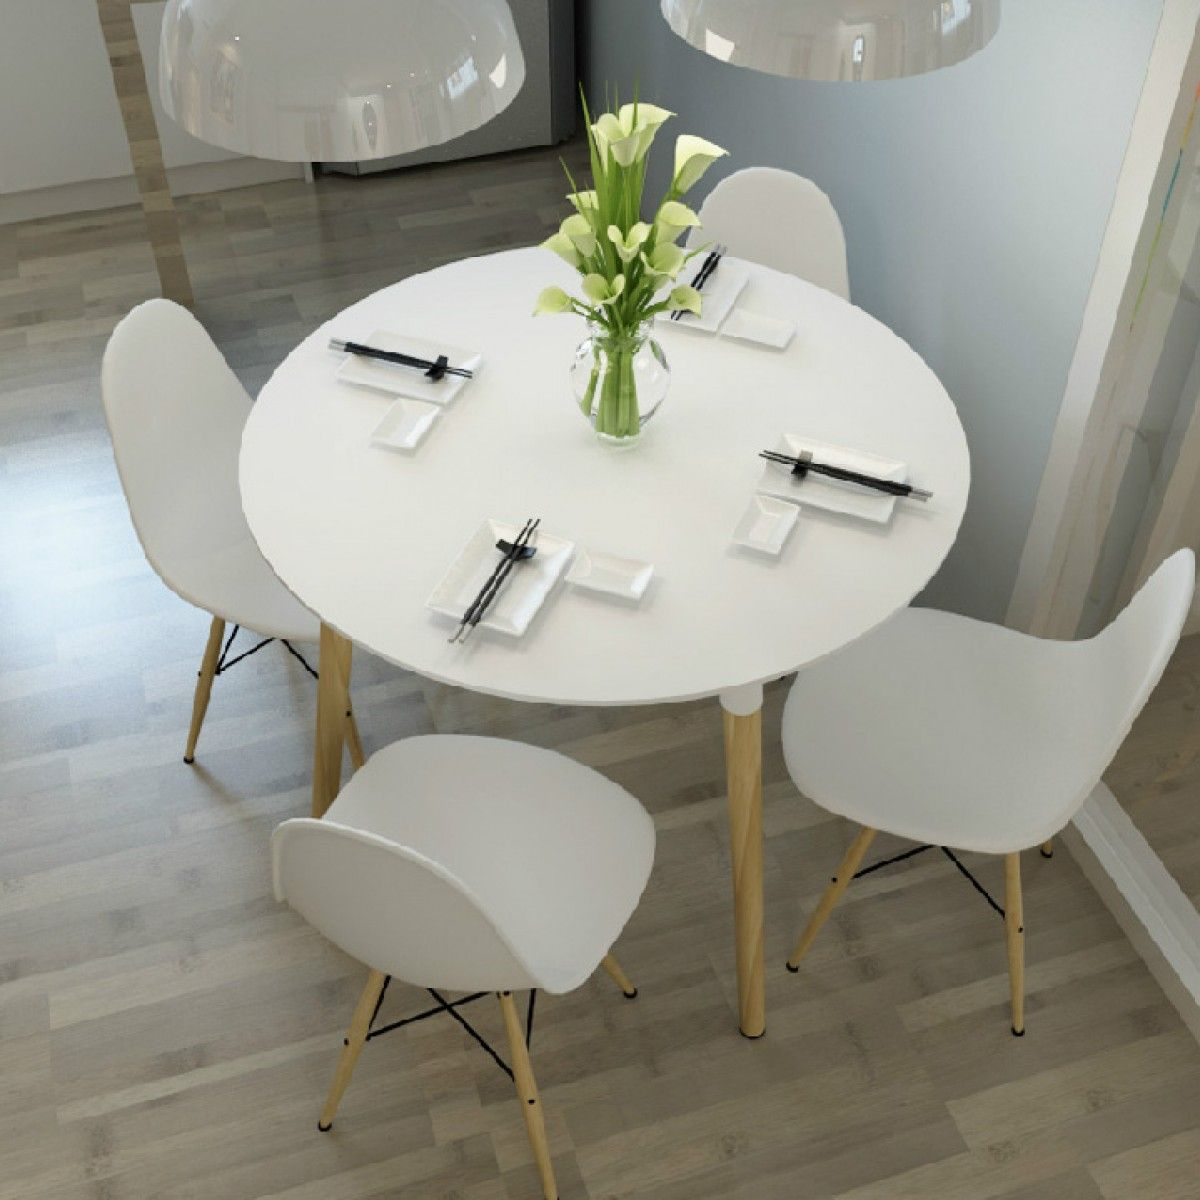 Eames Style DSW White Round Dining Table   Dining Table   Pinterest ...